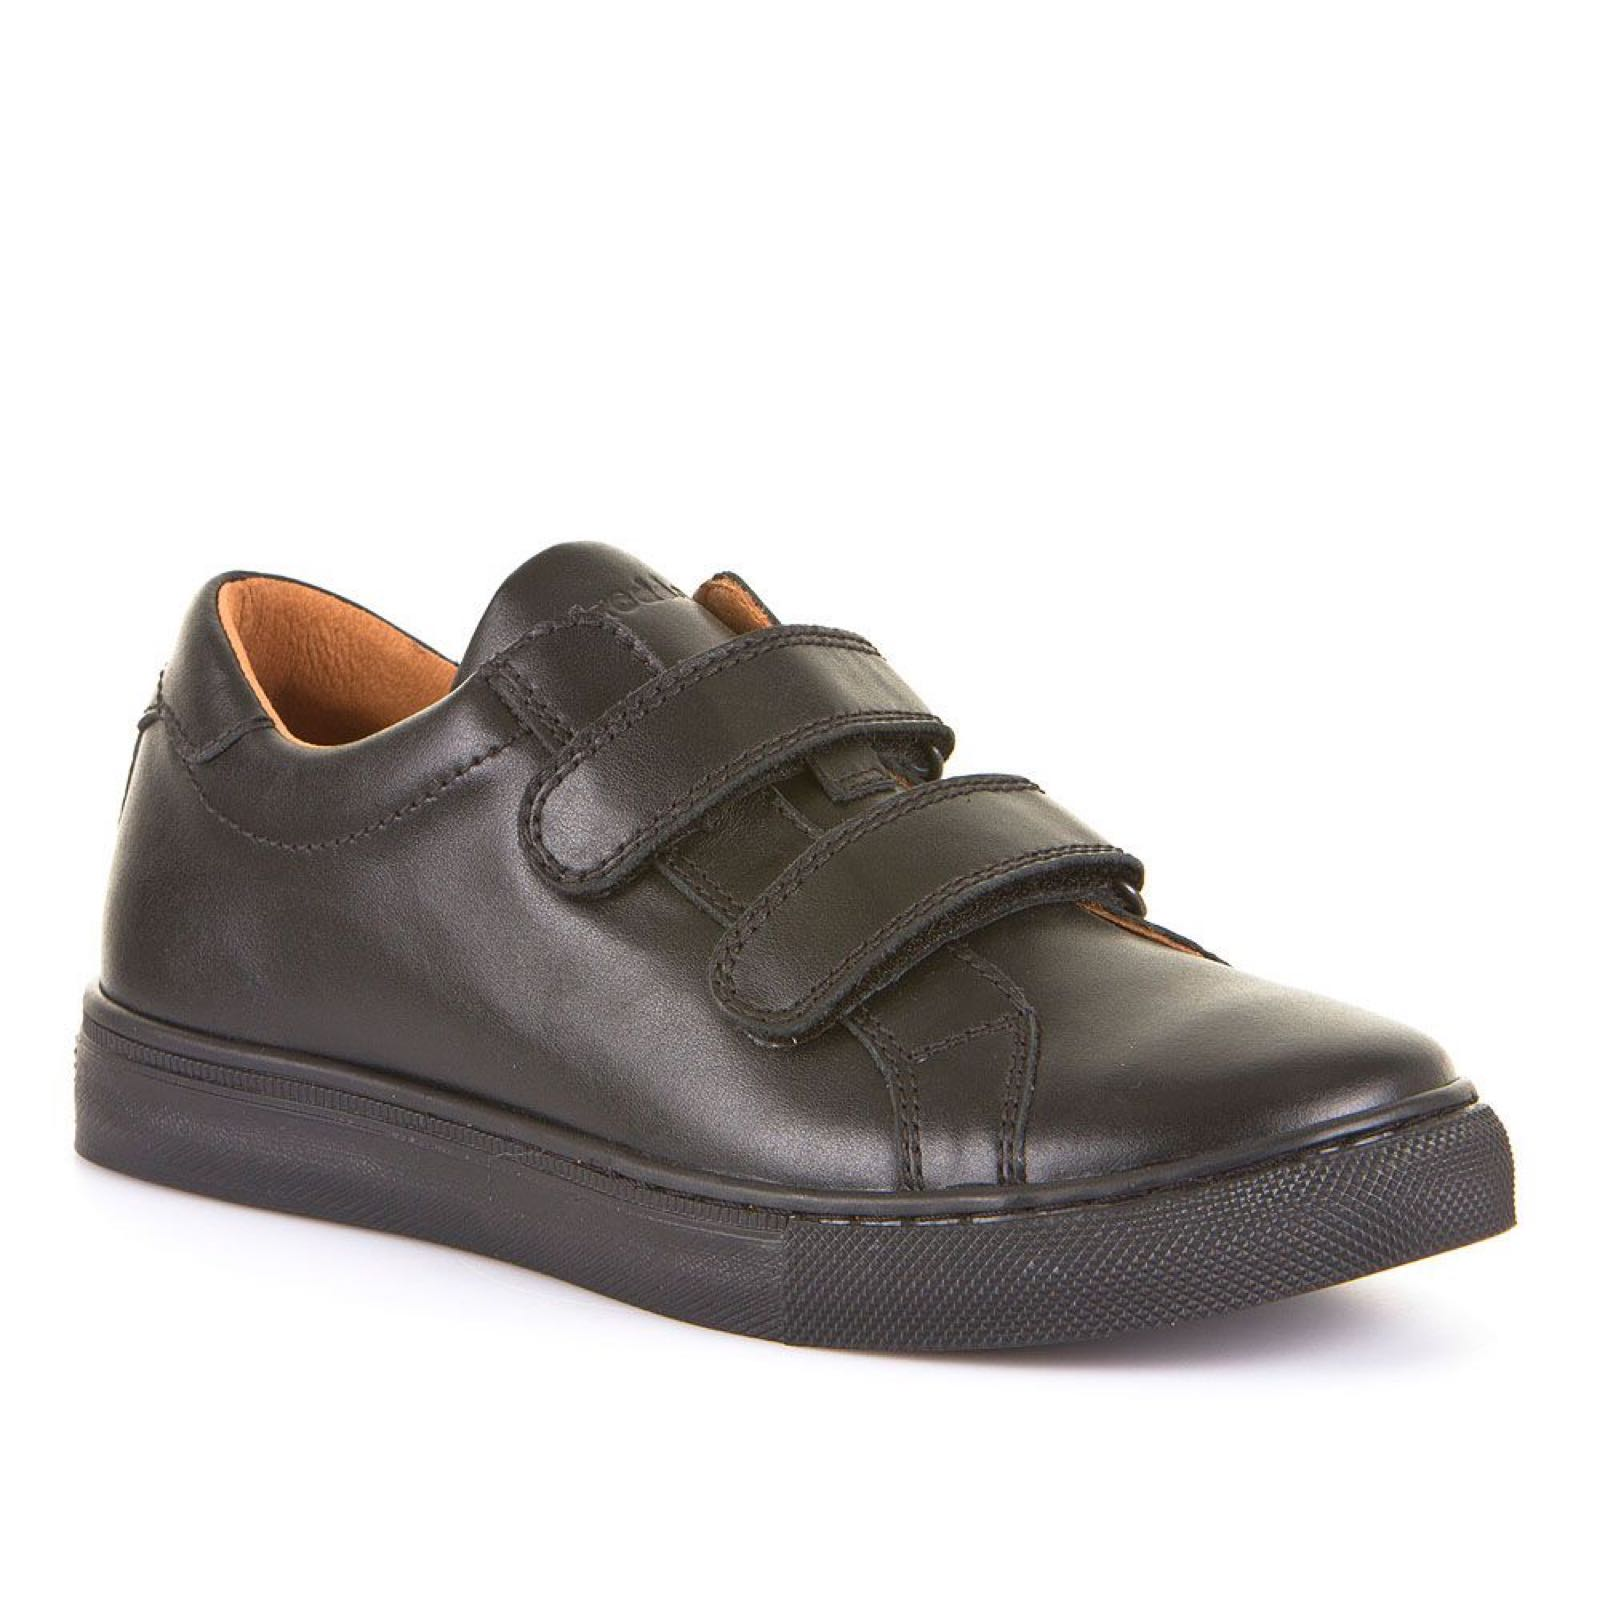 Froddo Children Shoe G4130068